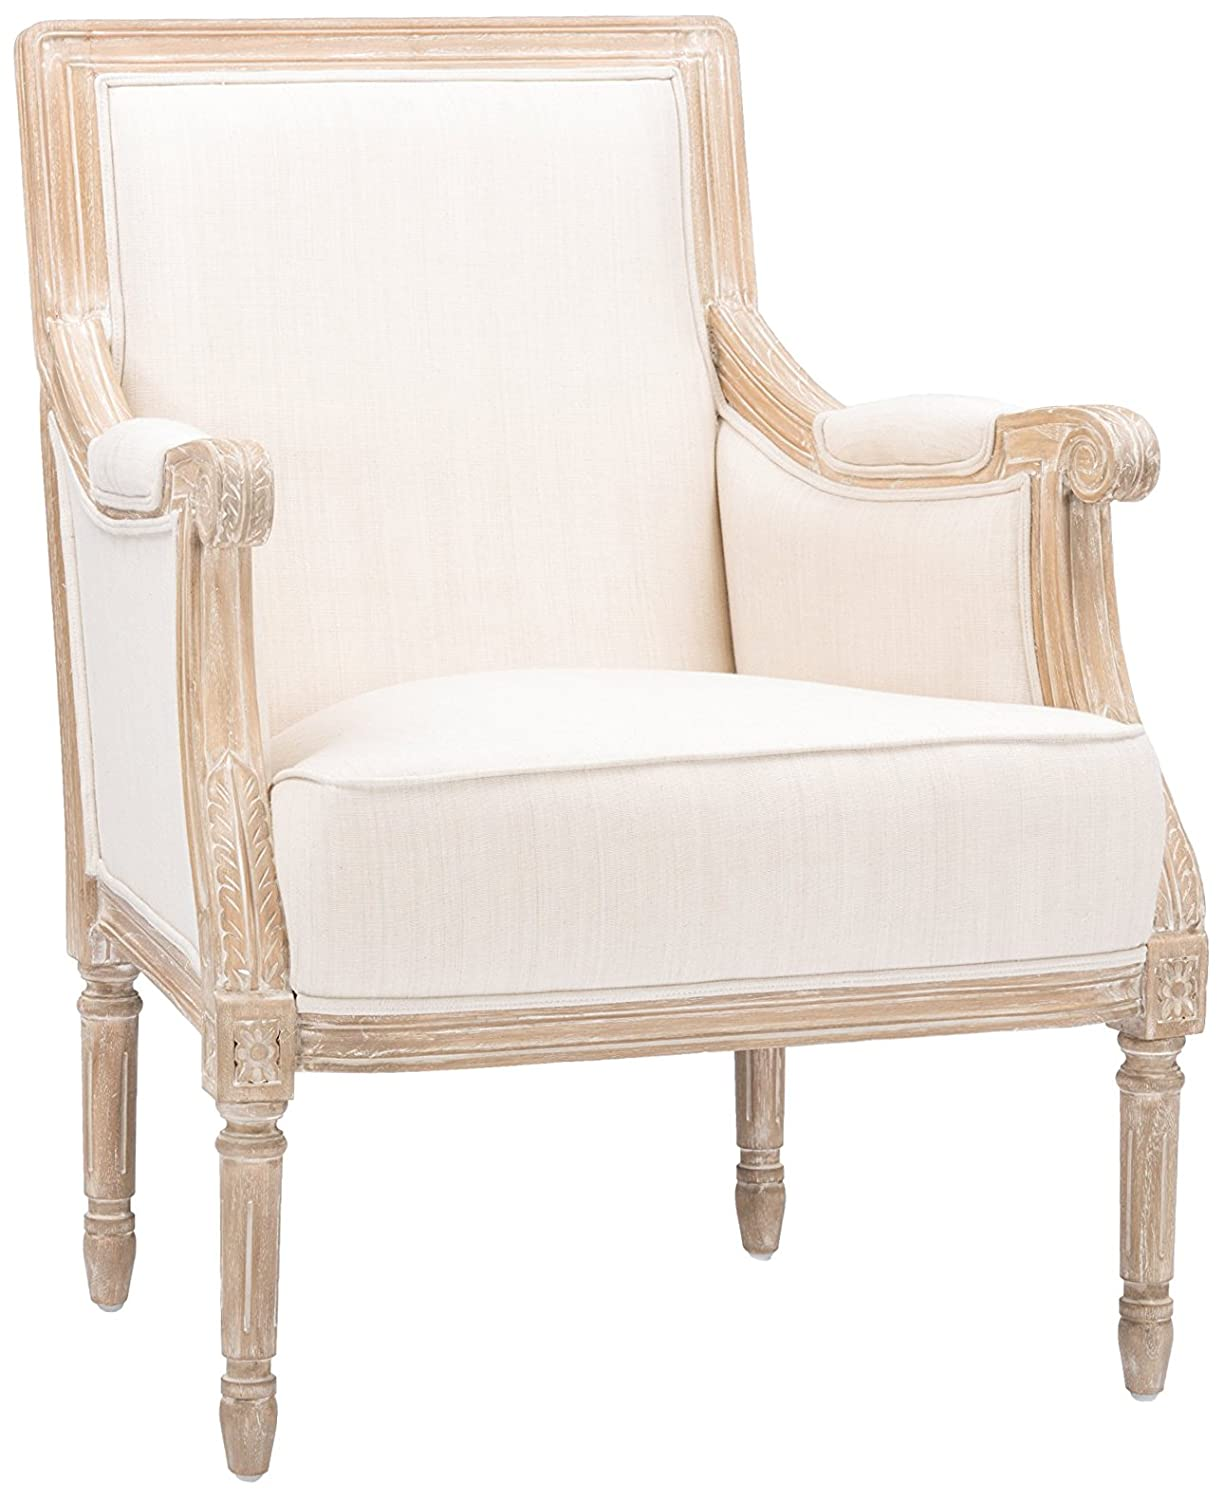 Chavanon Wood and Linen Arm Chair